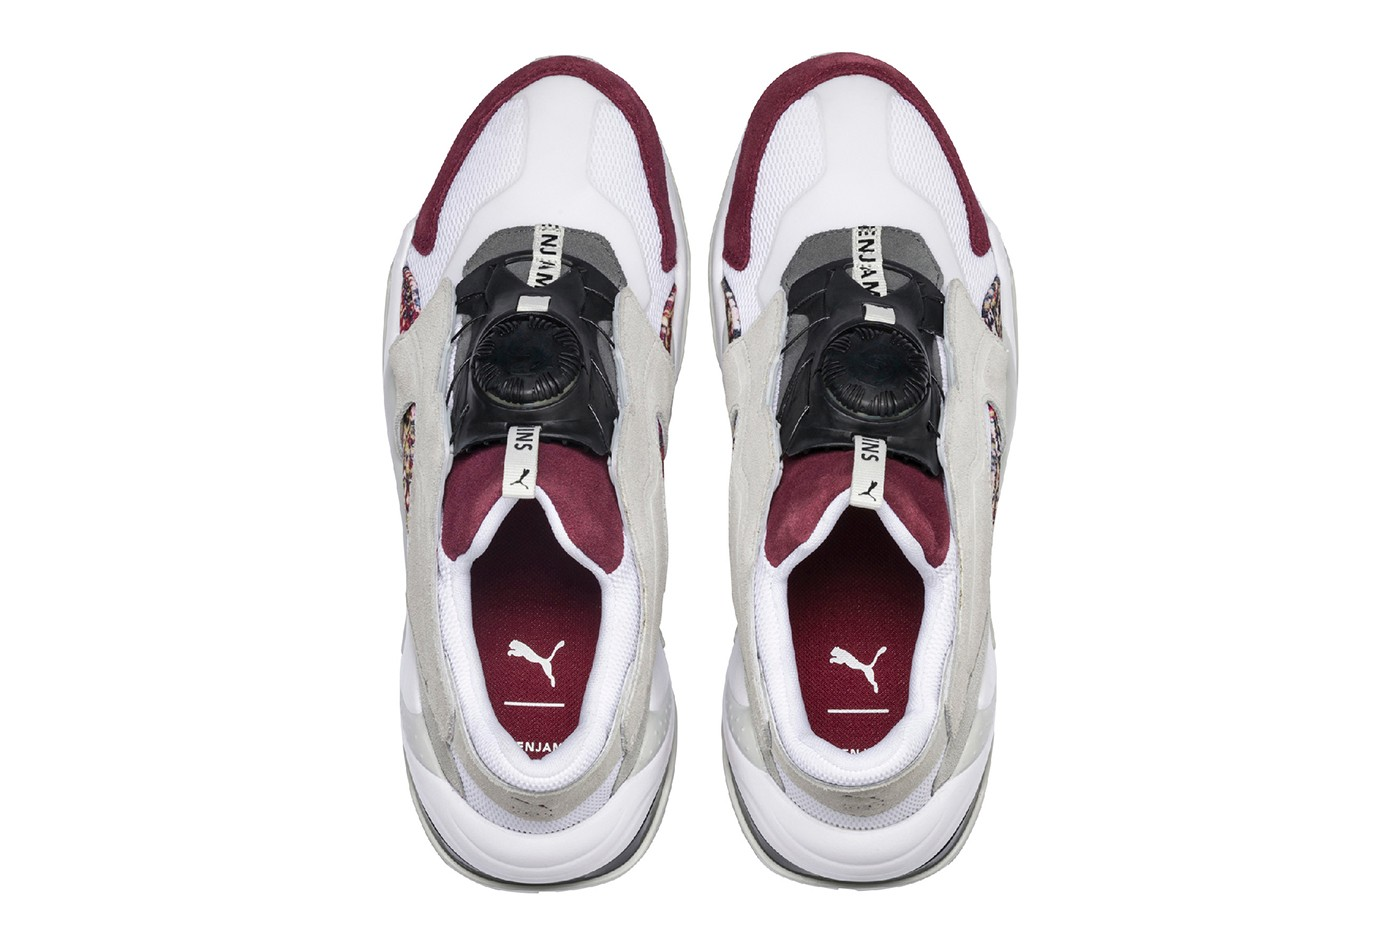 PUMA Les Bejamins Spring Summer 2019 Collection RS-o Thunder Disc Carpet Istanbul